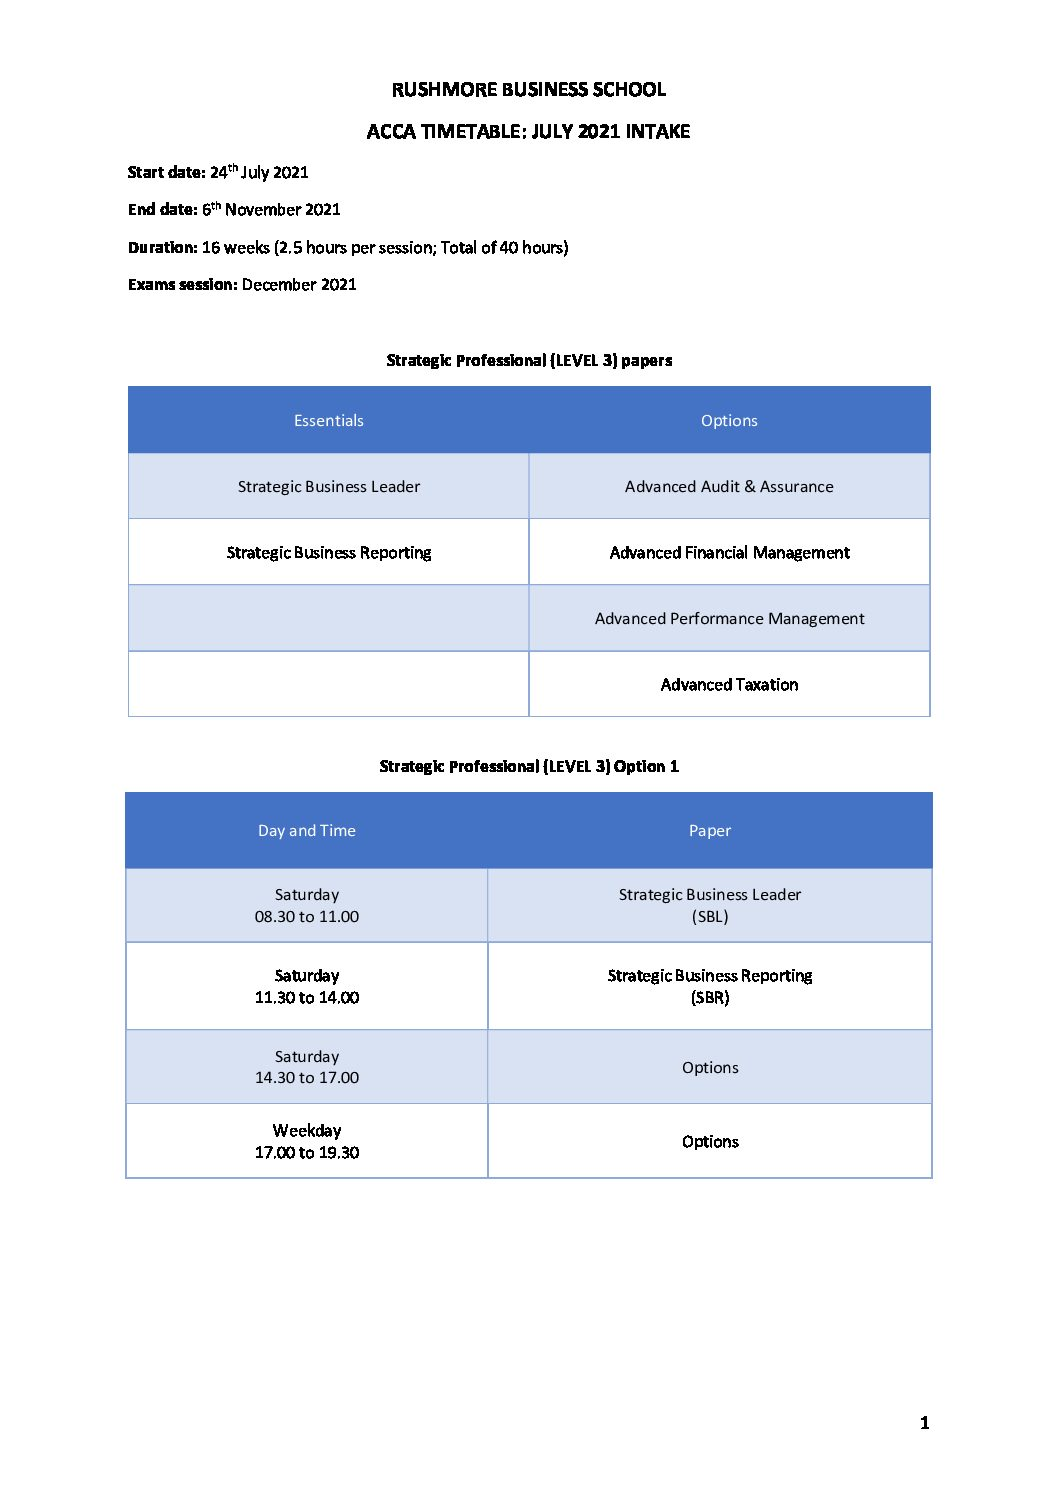 ACCA Level 3 Timetable